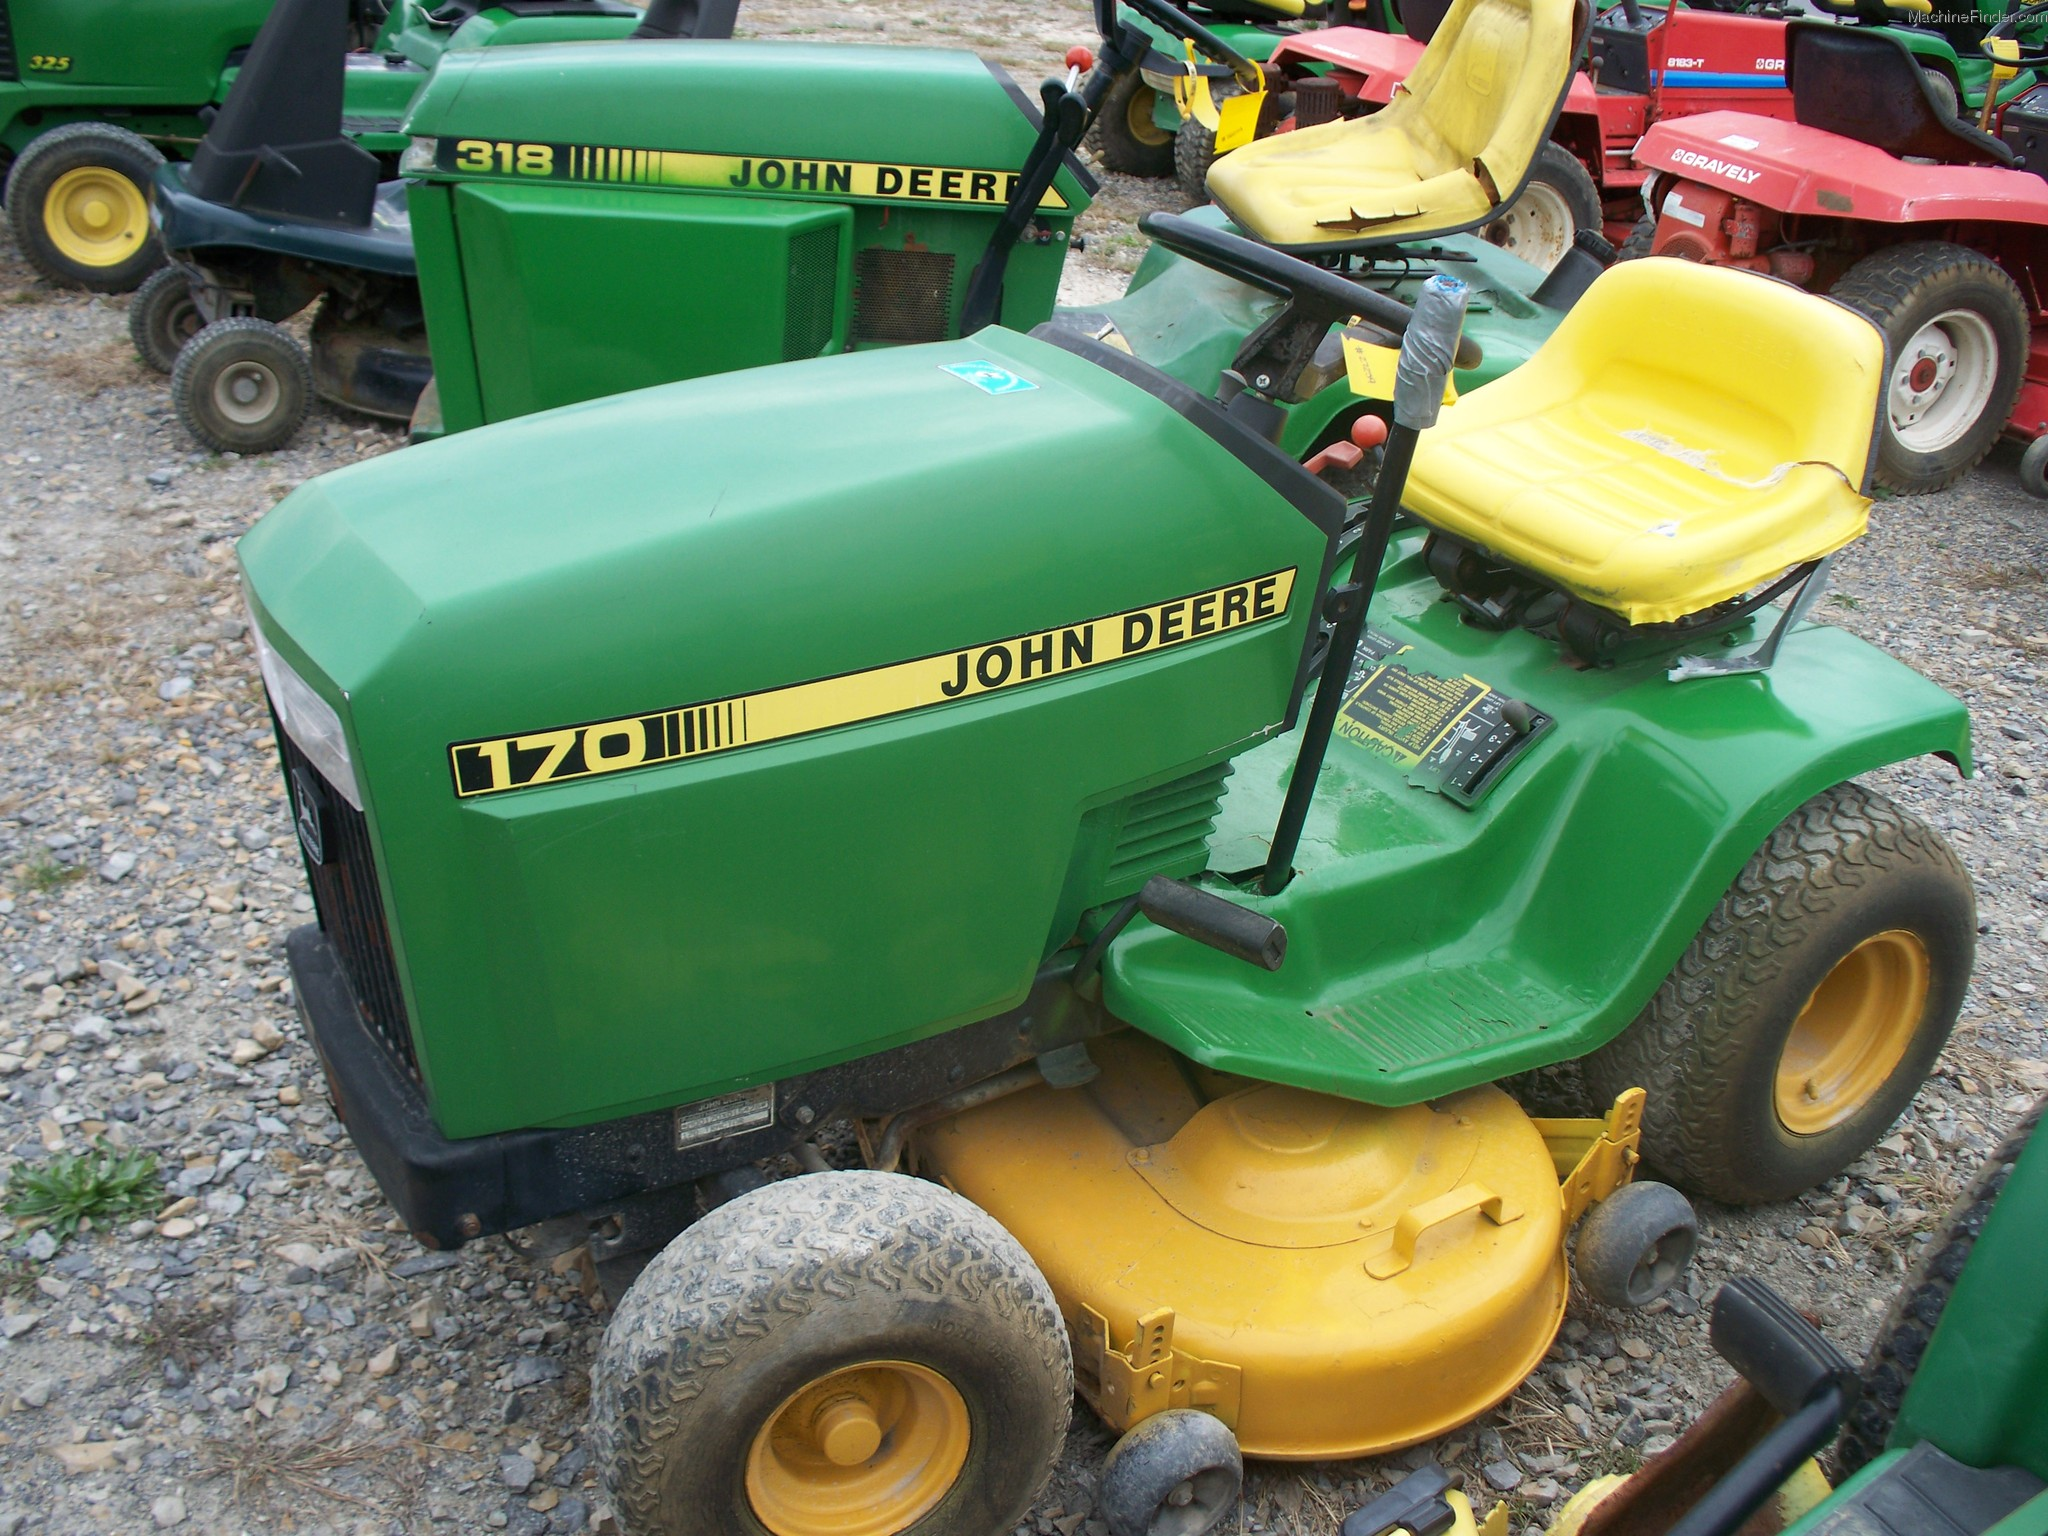 deere front john garden exploded pasrts parts axle spare diagram tractor steering and